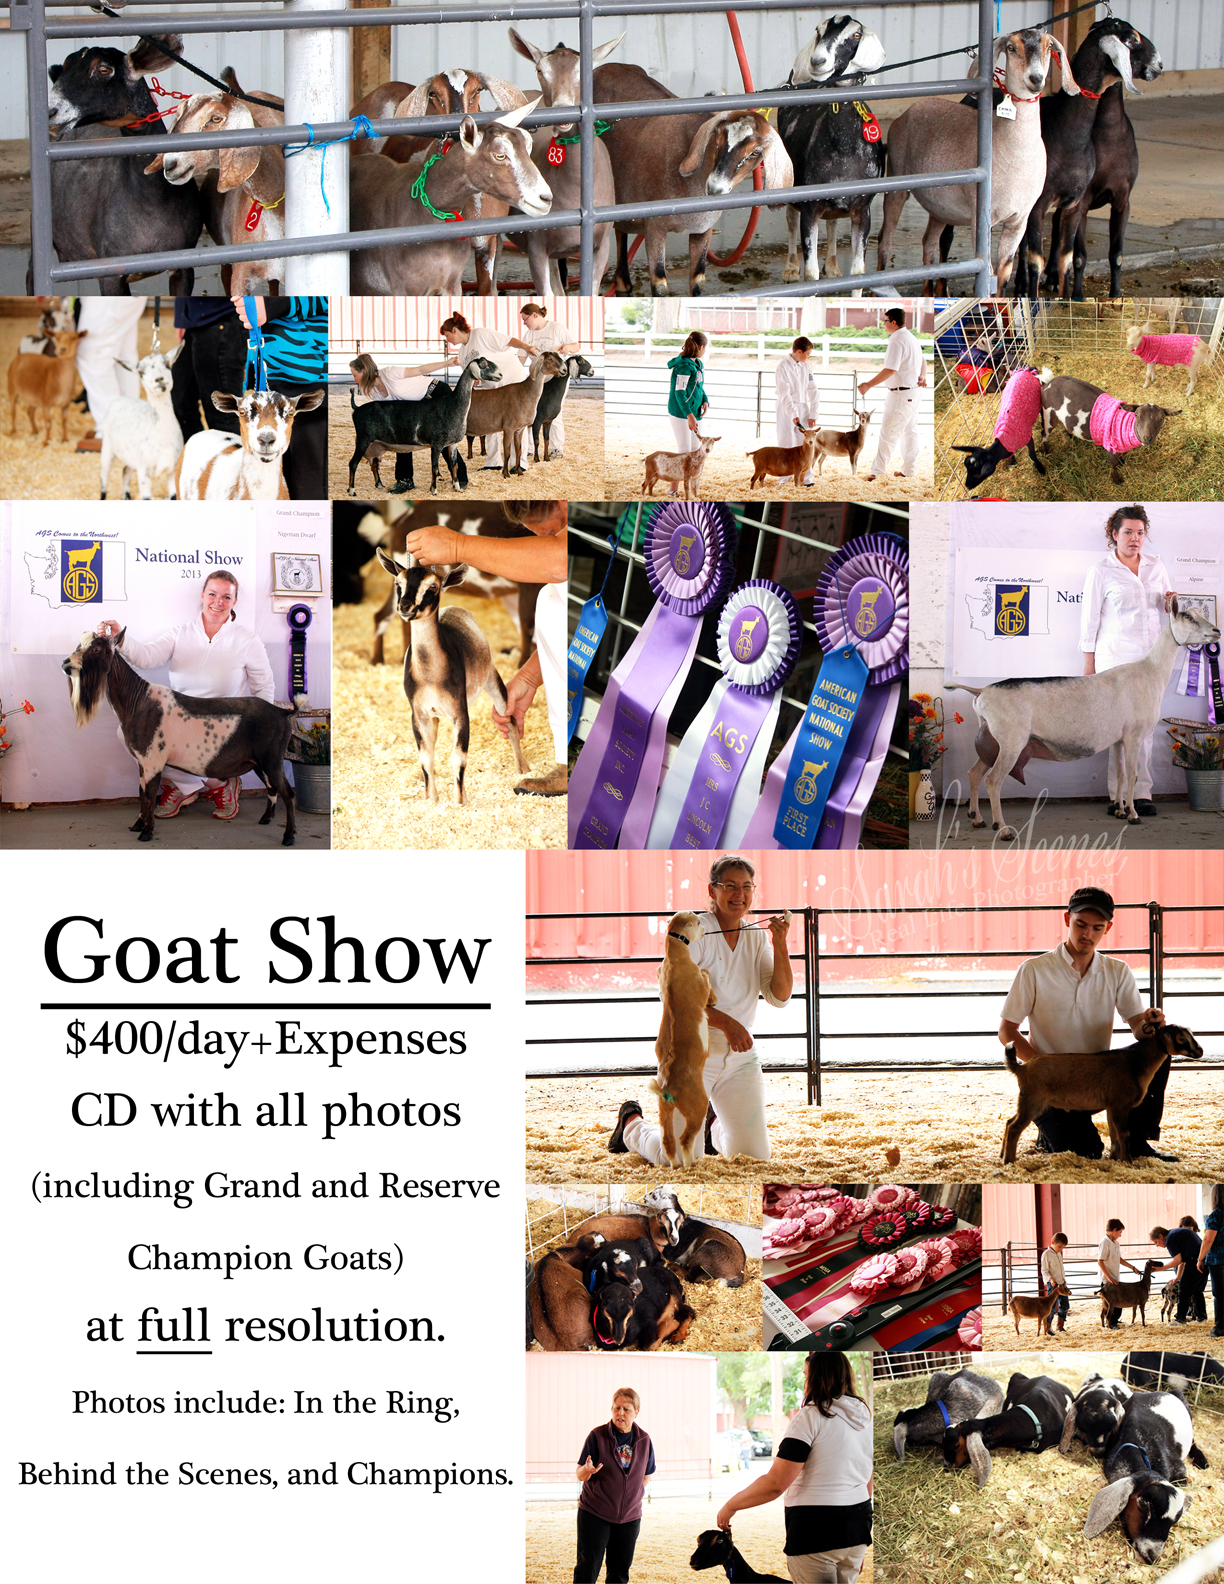 Goat Shows